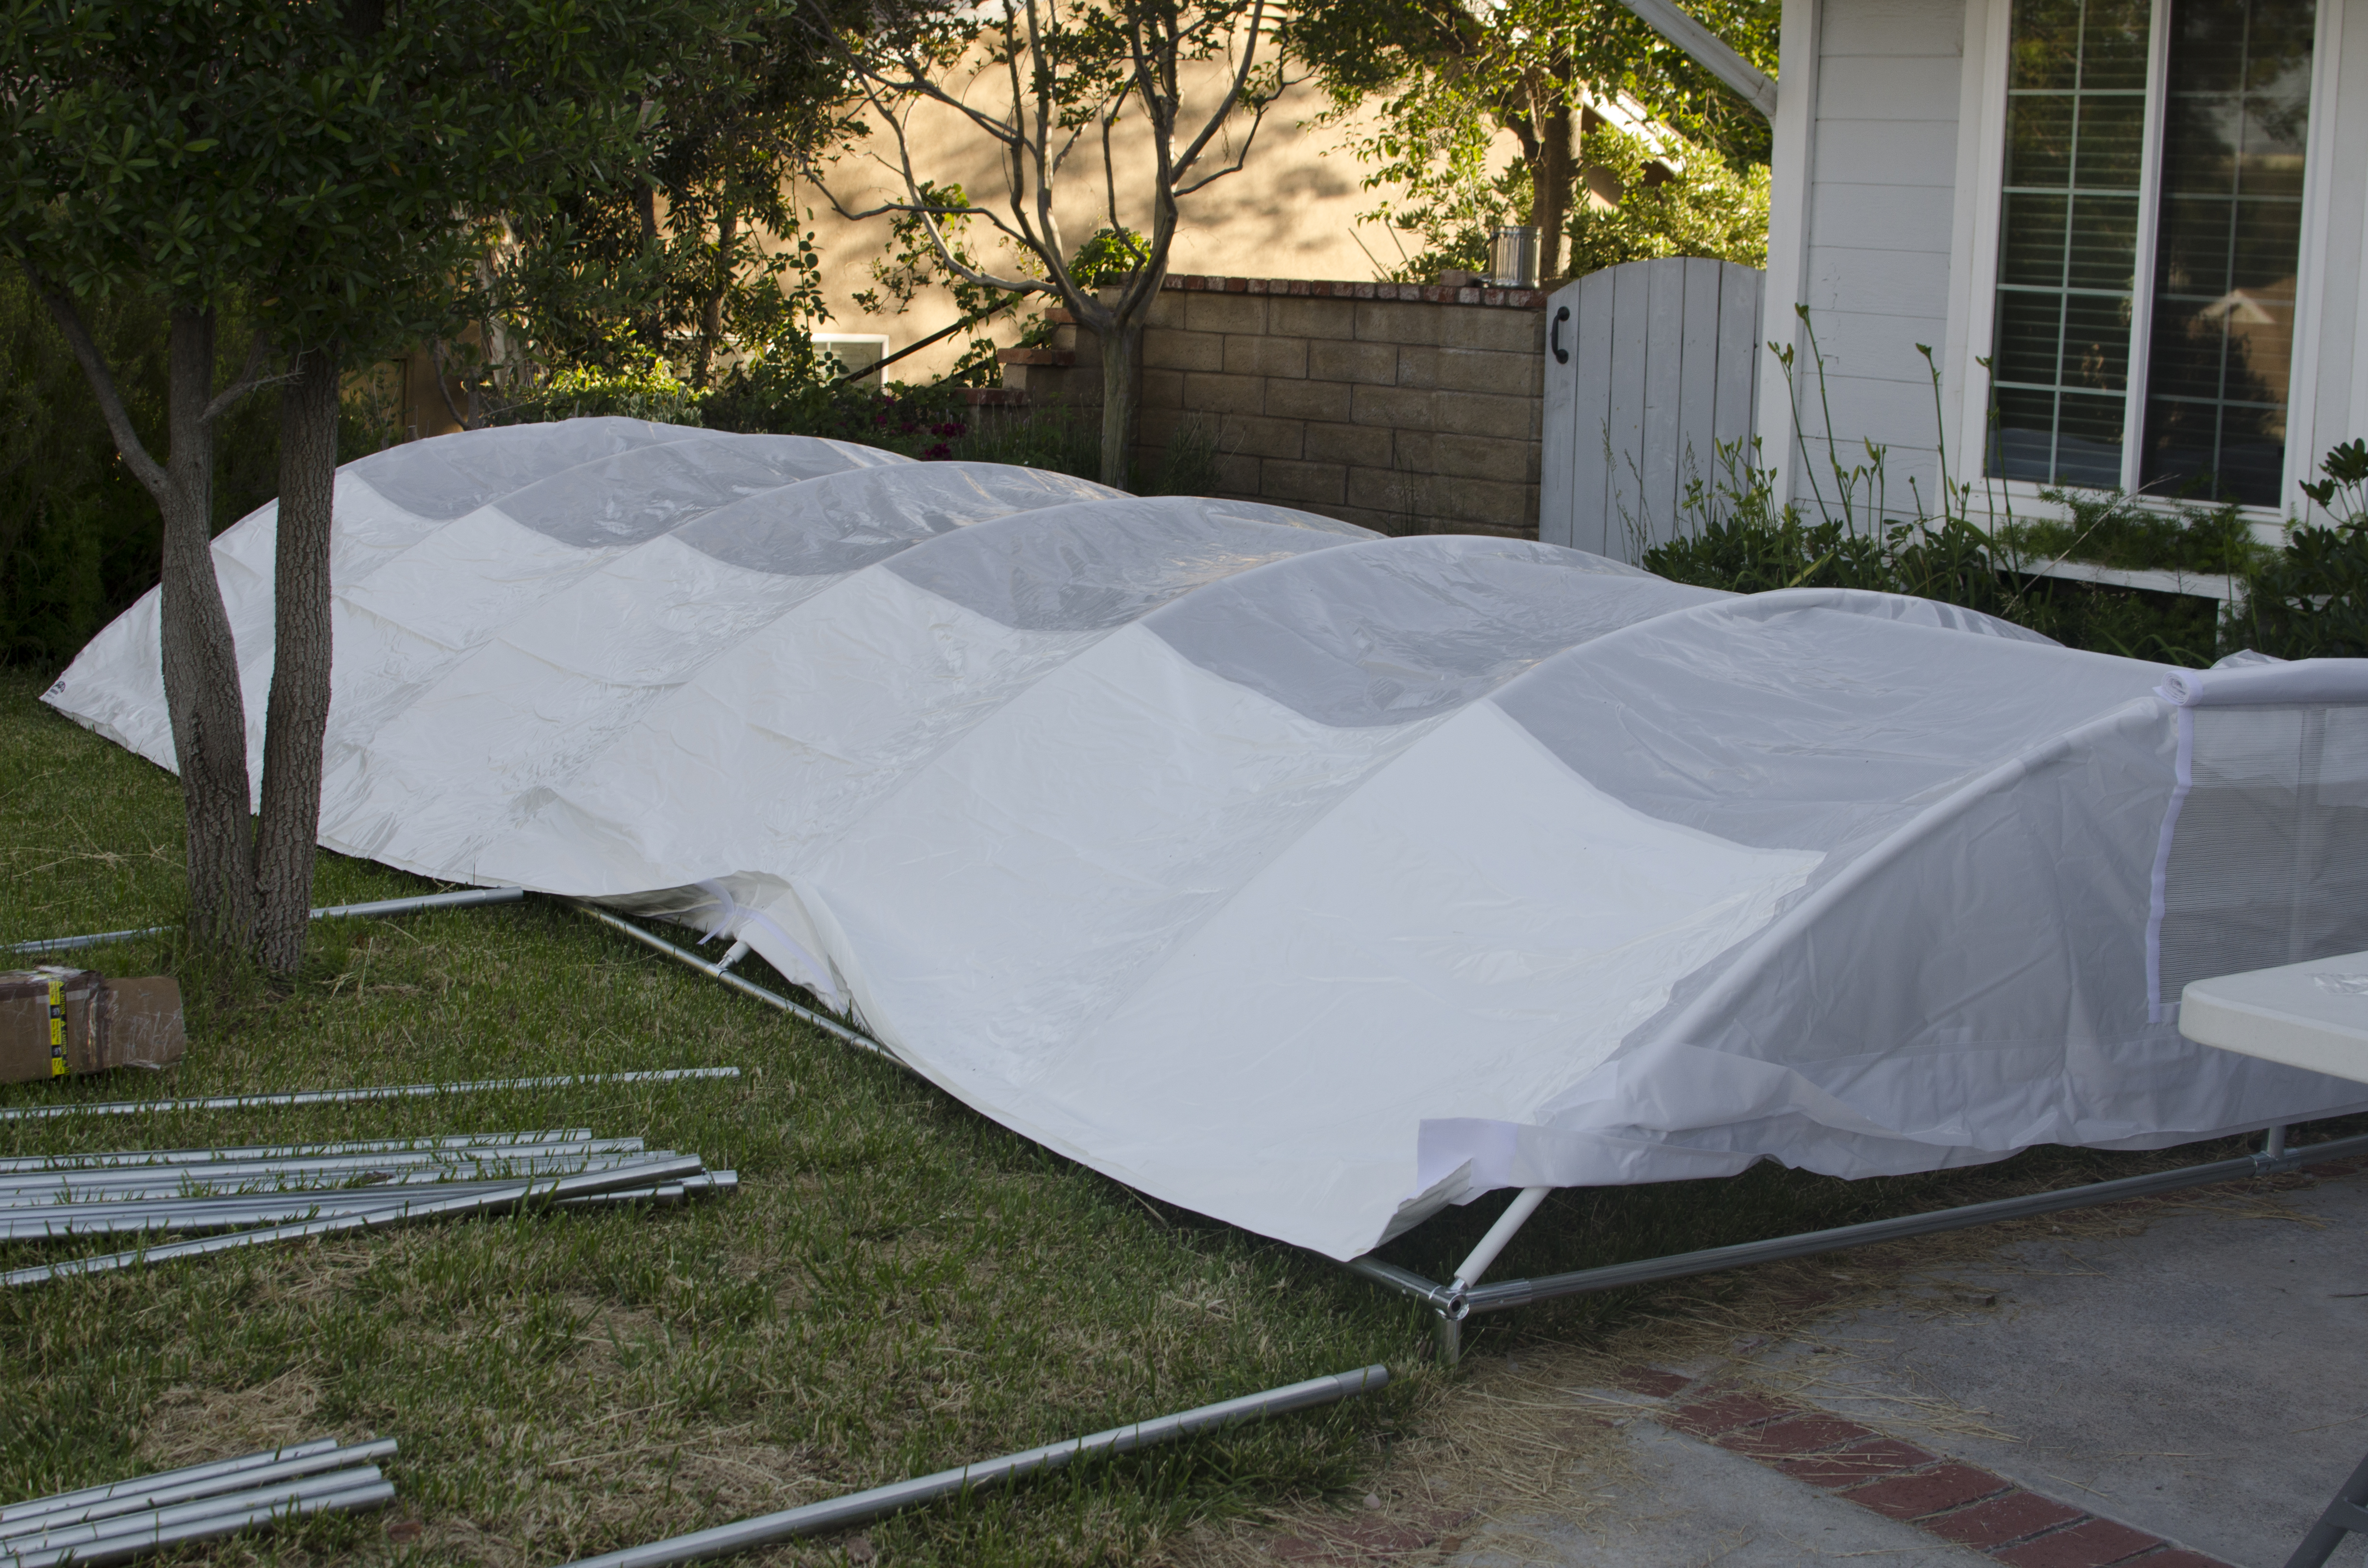 Canopy in place. & Buying A 10×20 Trimline Canopy by Flourish | MowryJournal.com